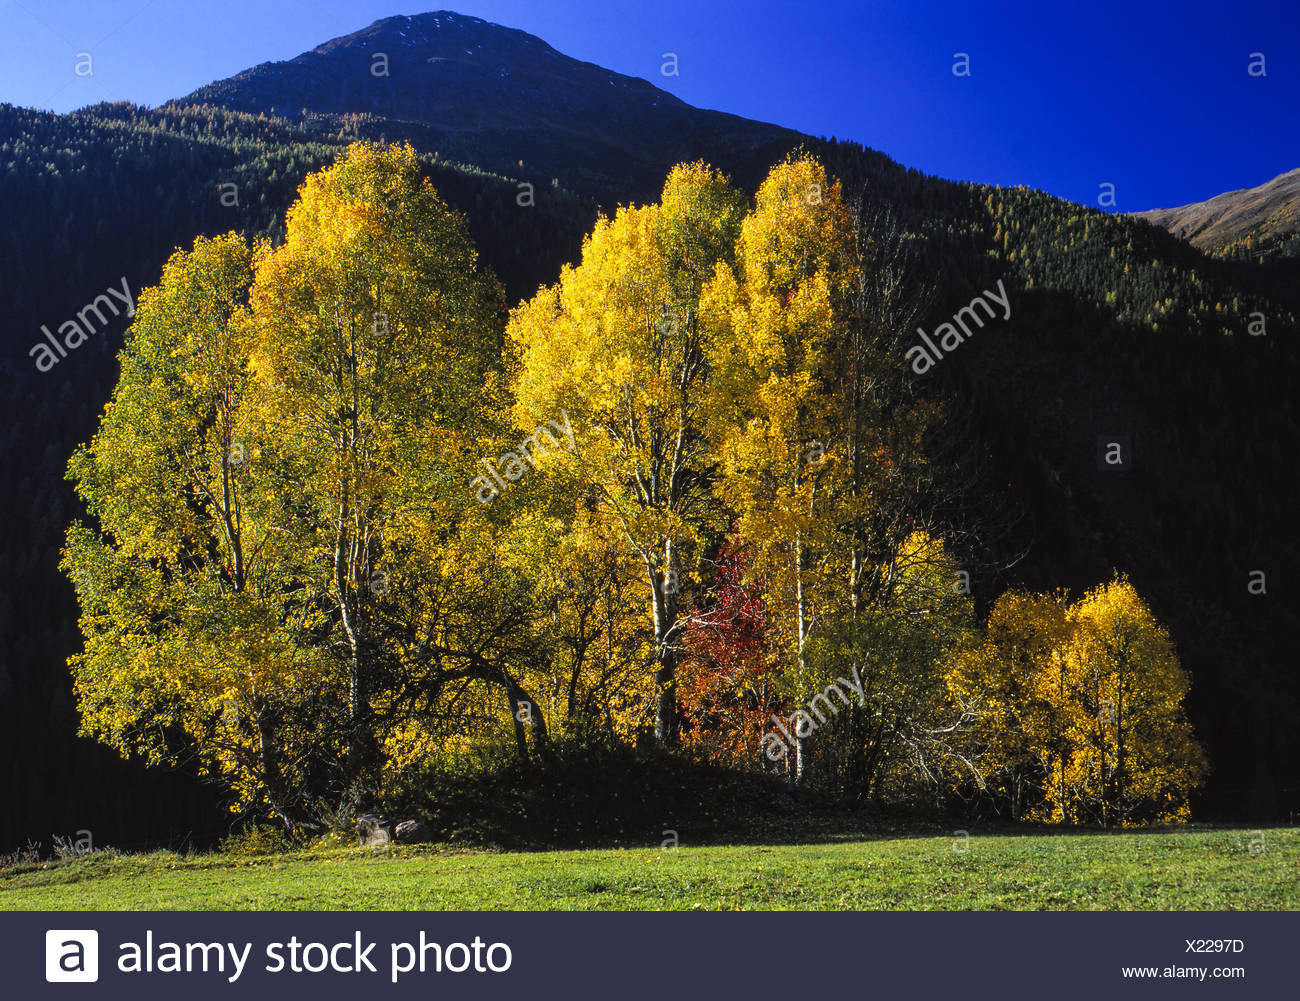 Eine Gruppe Espenim Herbst, A group of Aspen trees in autumn, Autumn, Fall, Aspen, Nature, Tree, Trees, Leaves, Colored, Yellow, - Stock Image